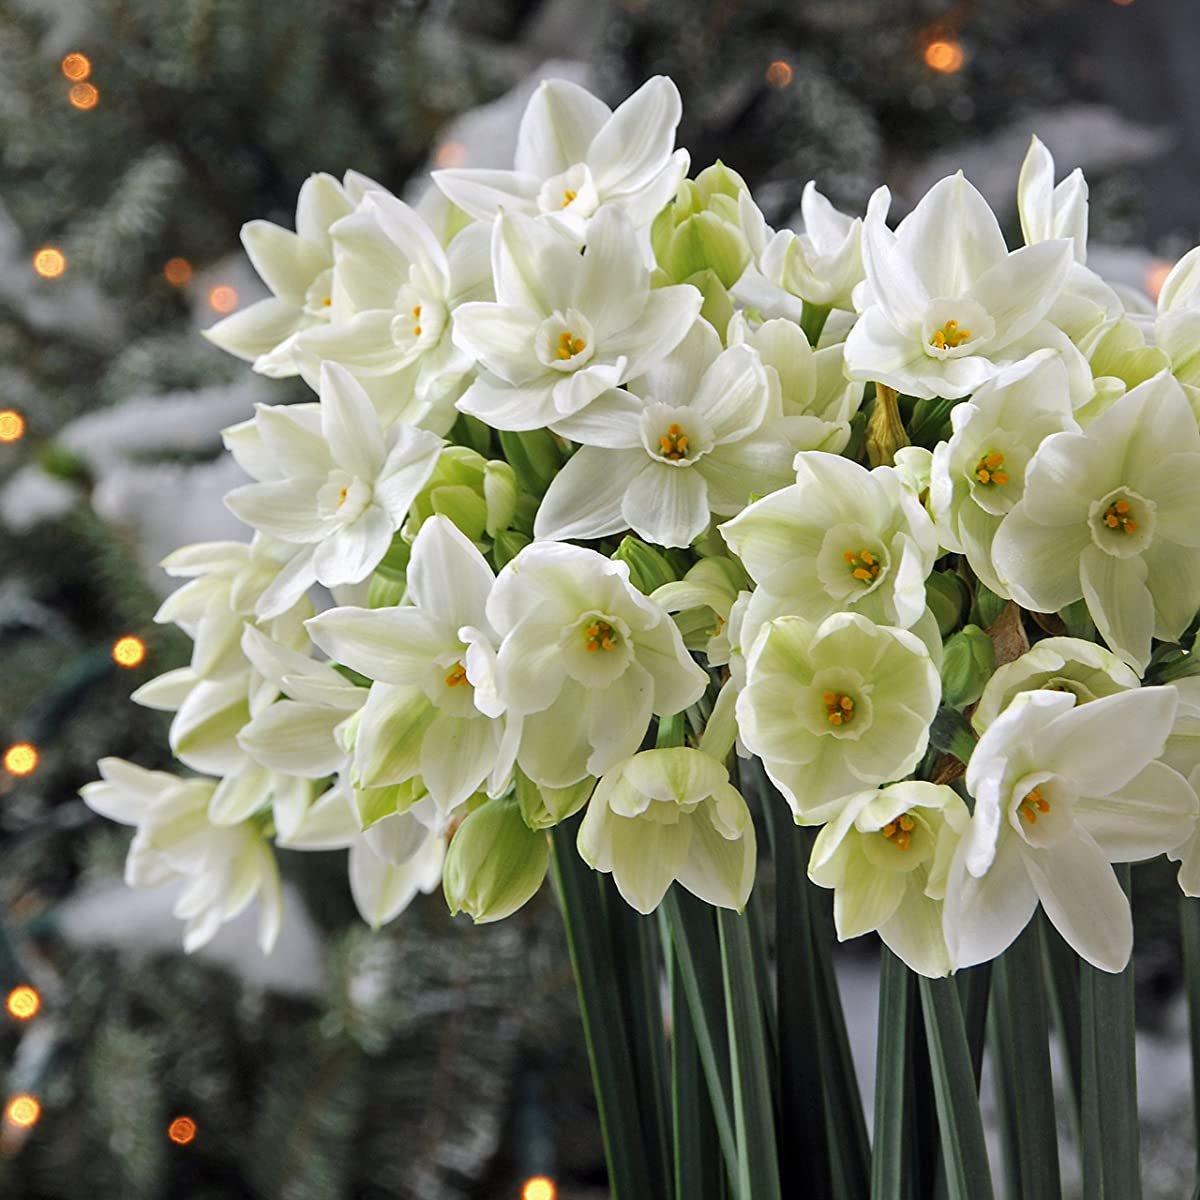 20 Paperwhite Bulbs Ariel, Size Extra Large Paperwhites for ForcingGrown in Israel! - Best Quality - Indoor Blooming & Fragrant!